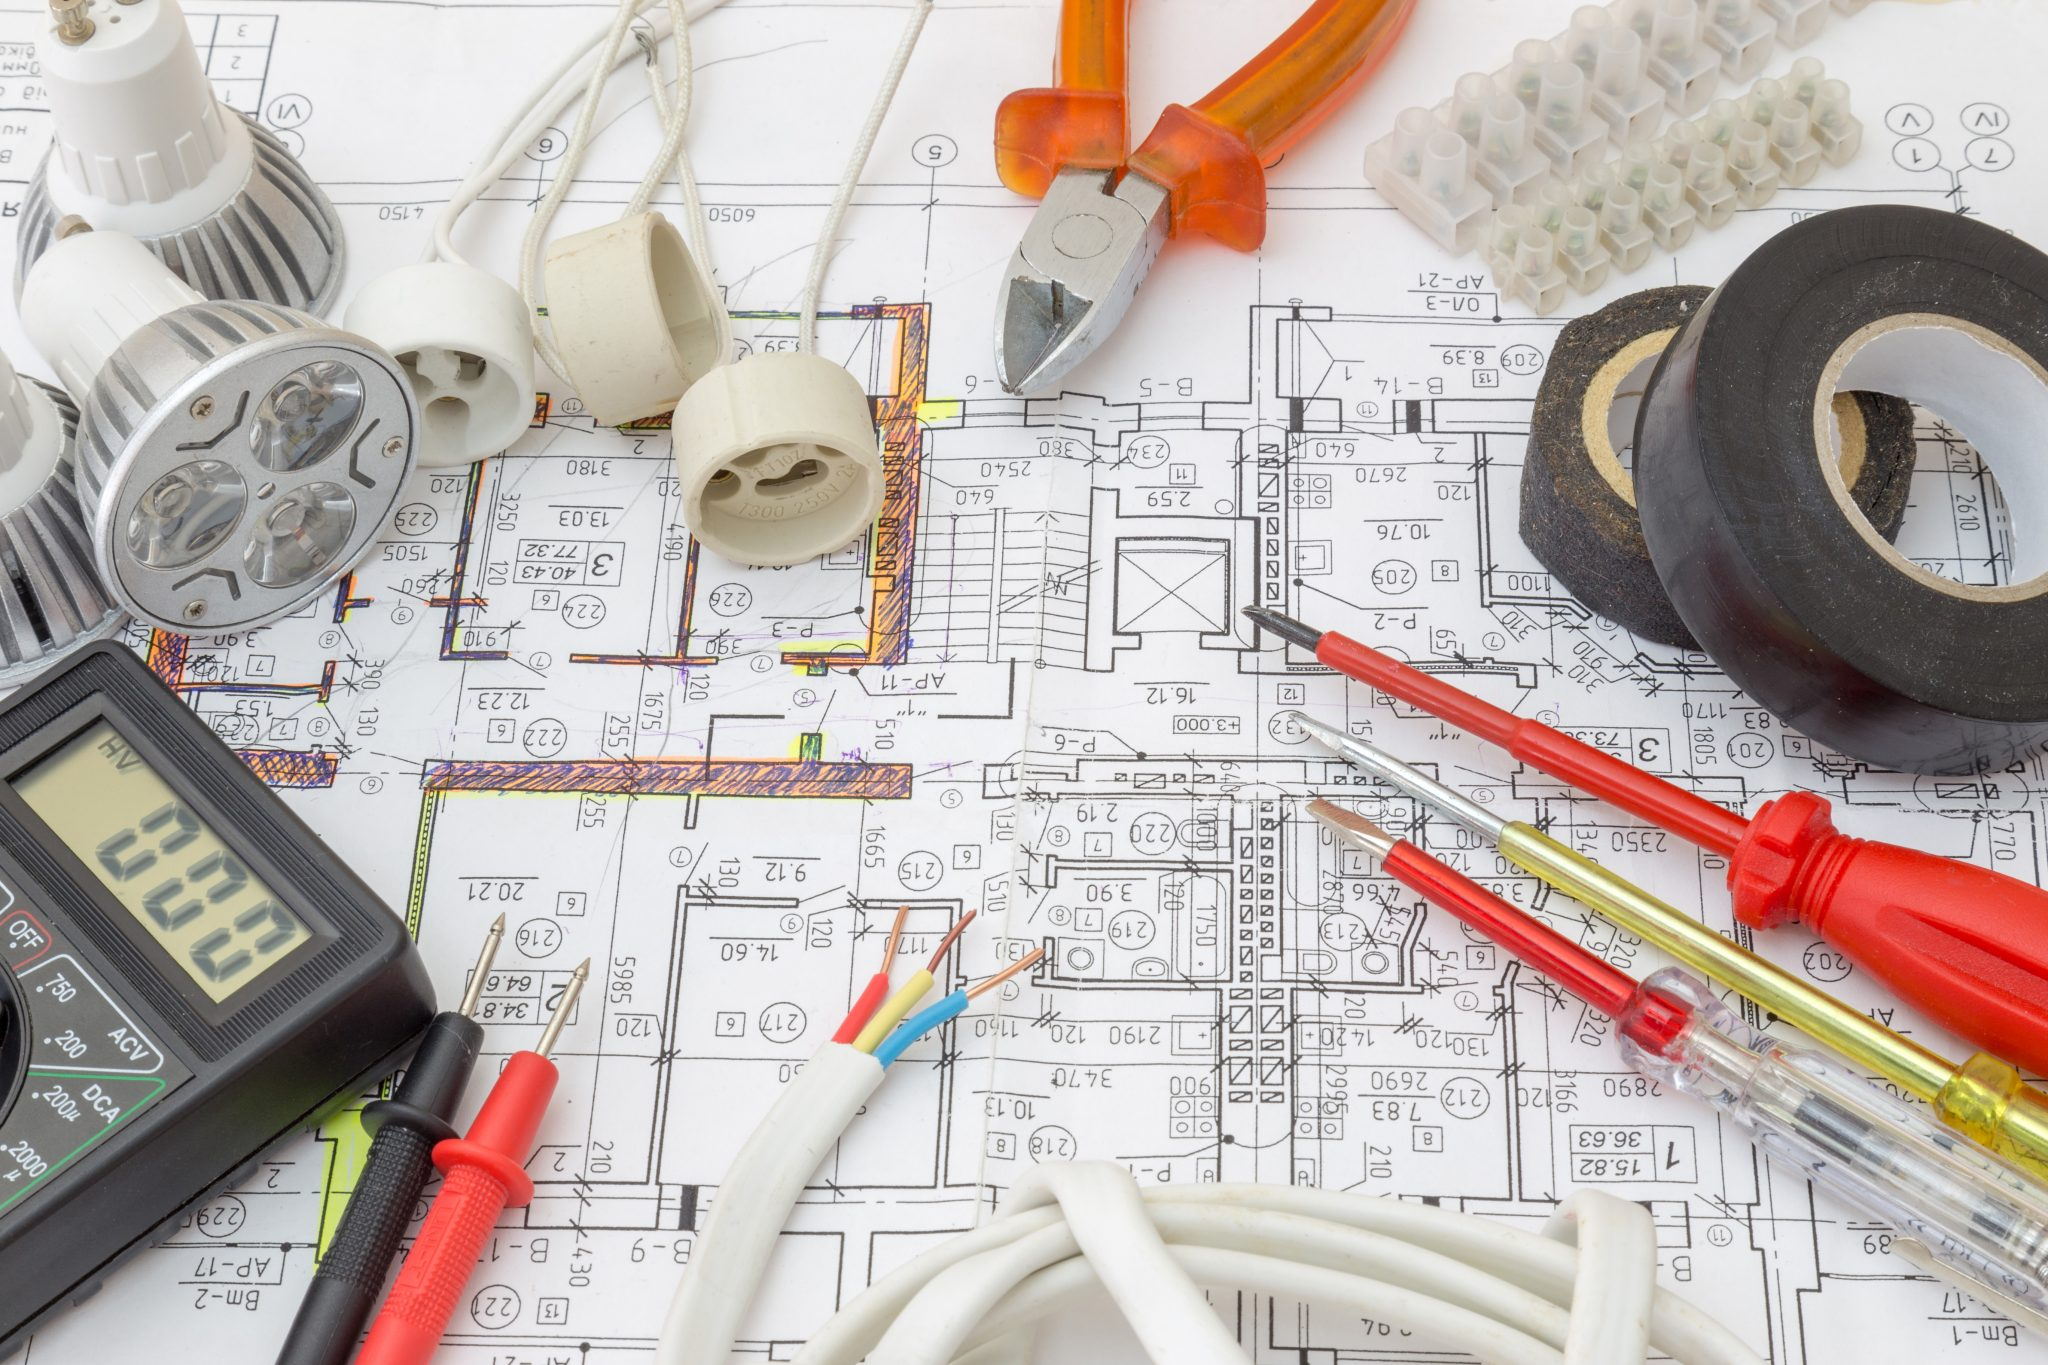 Why Upgrade Your Homes Electrical Wiring Vancouver Electrician Home Such As Televisions Surround Sound Systems And Computers To Name A Few Are No Longer Manufactured Handle Old Fashioned Electricity